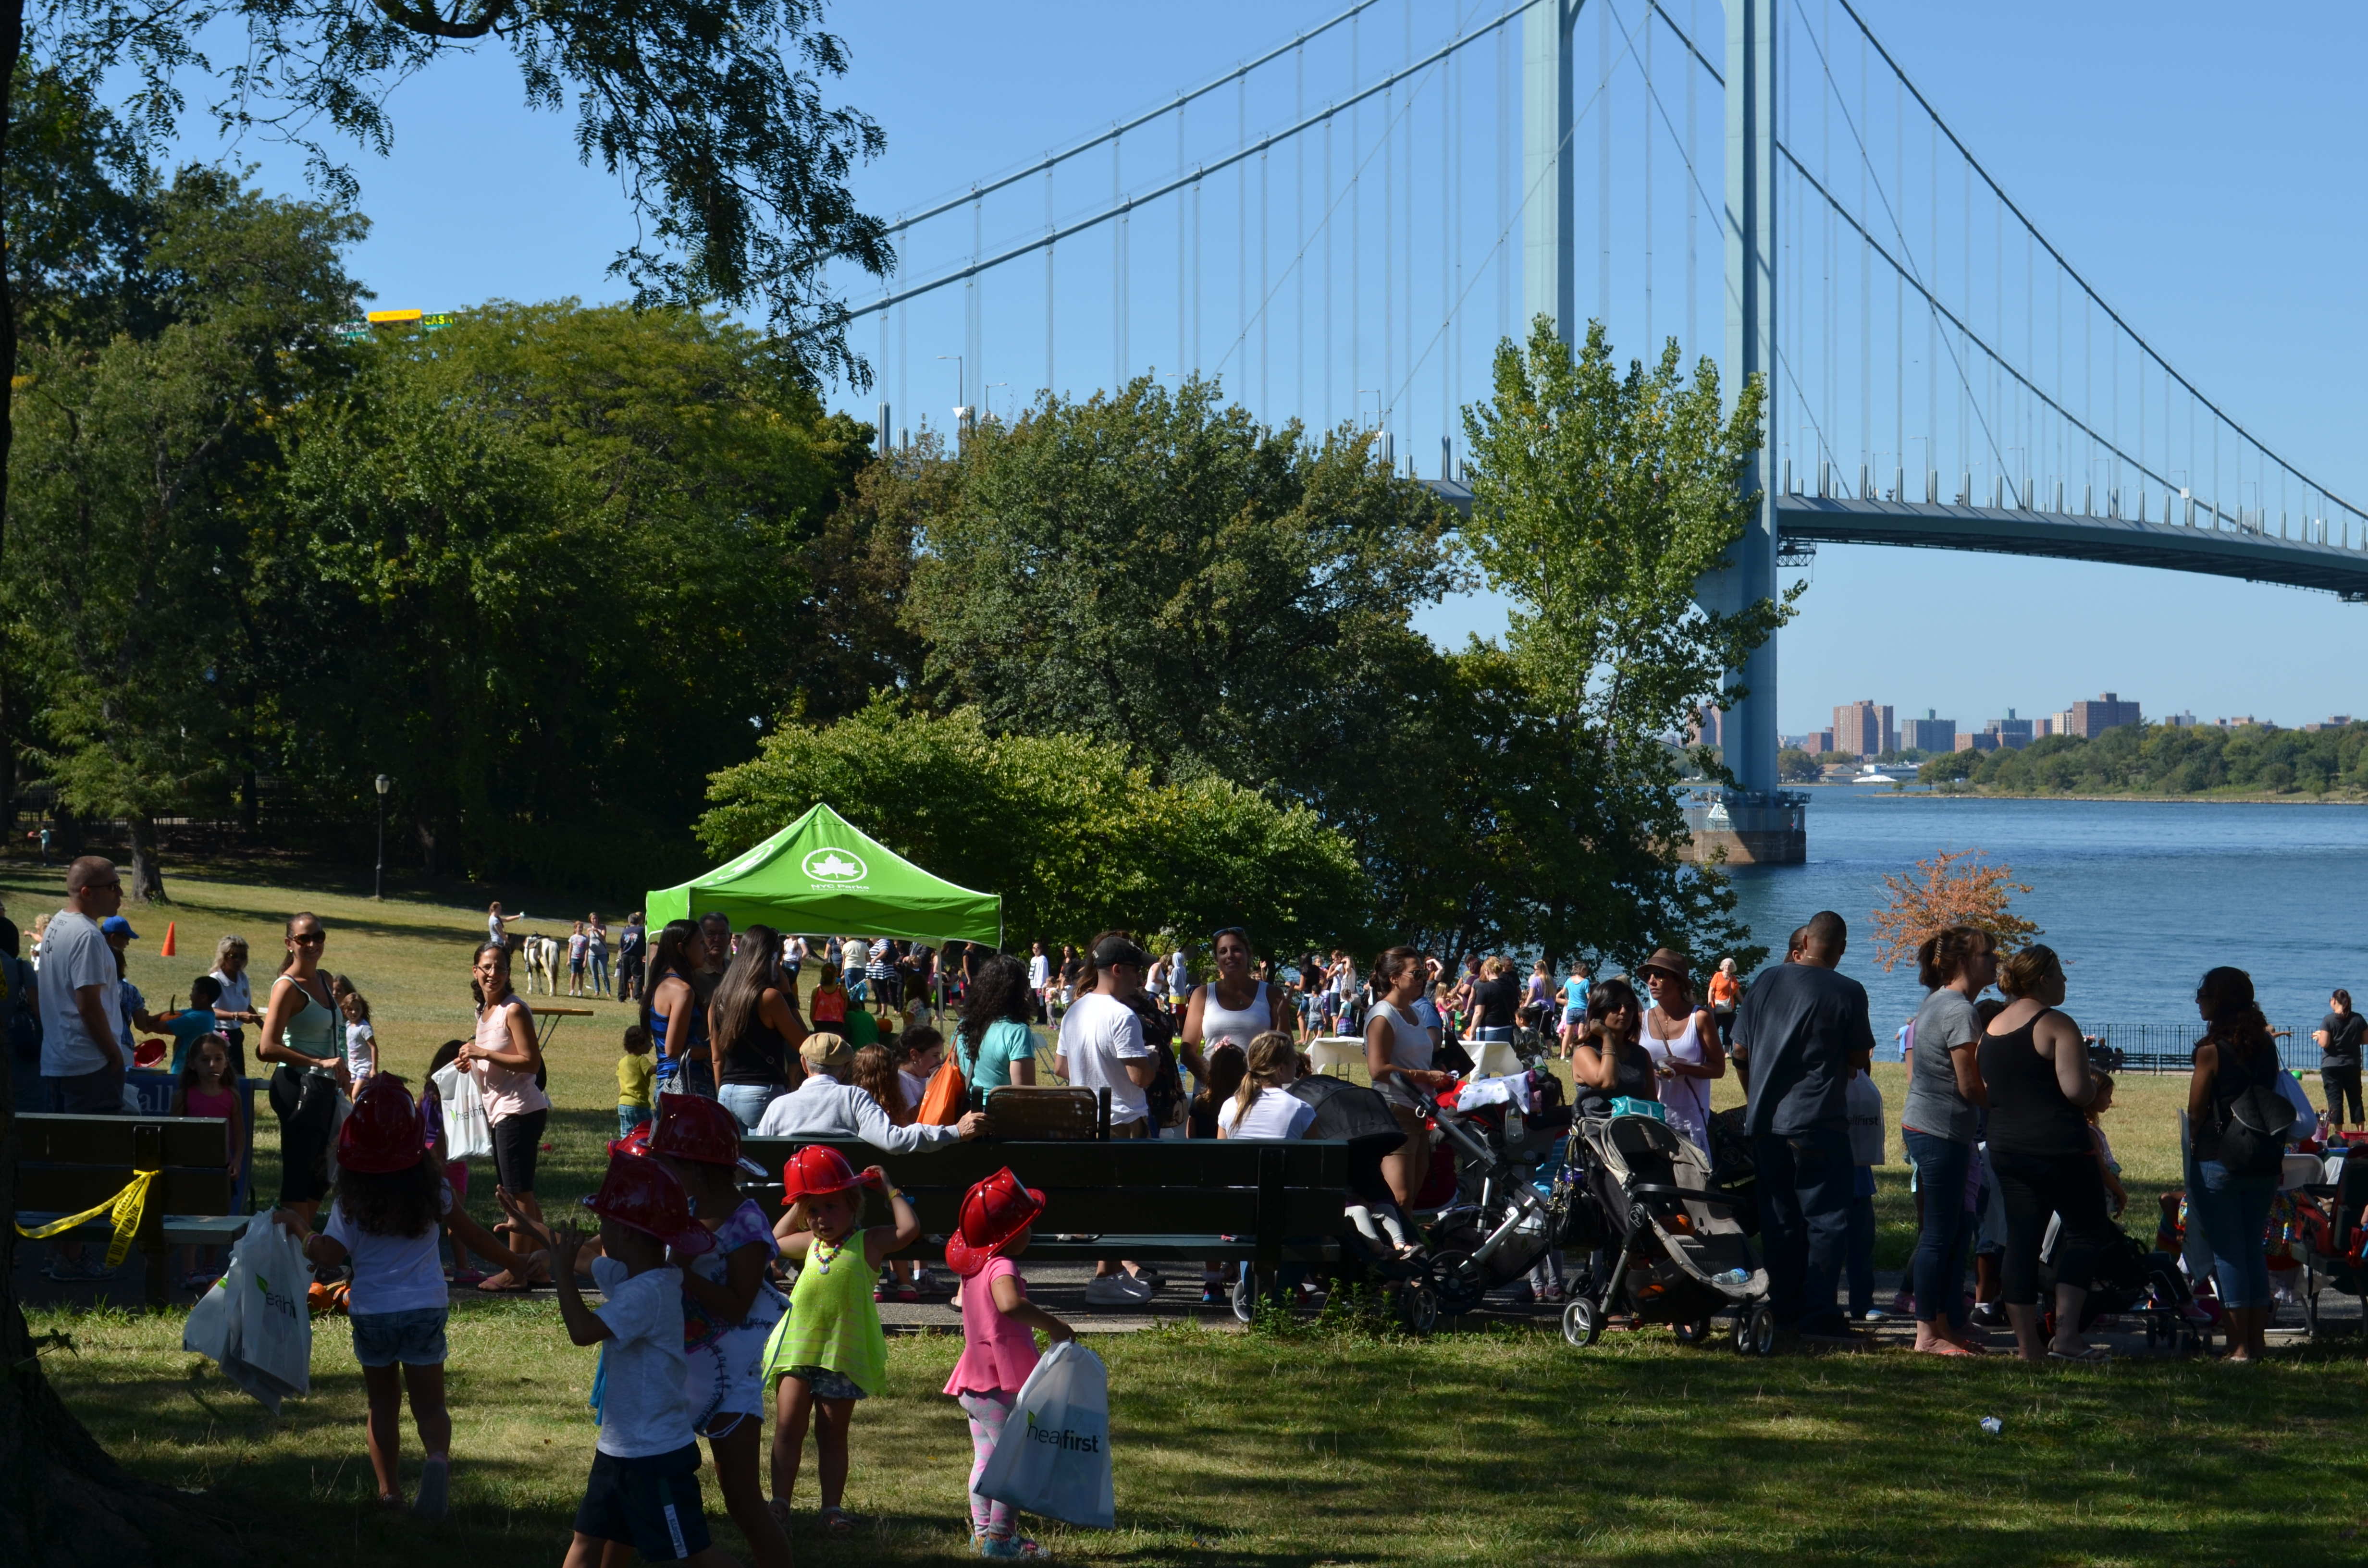 Fun for all at Whitestone Family Day